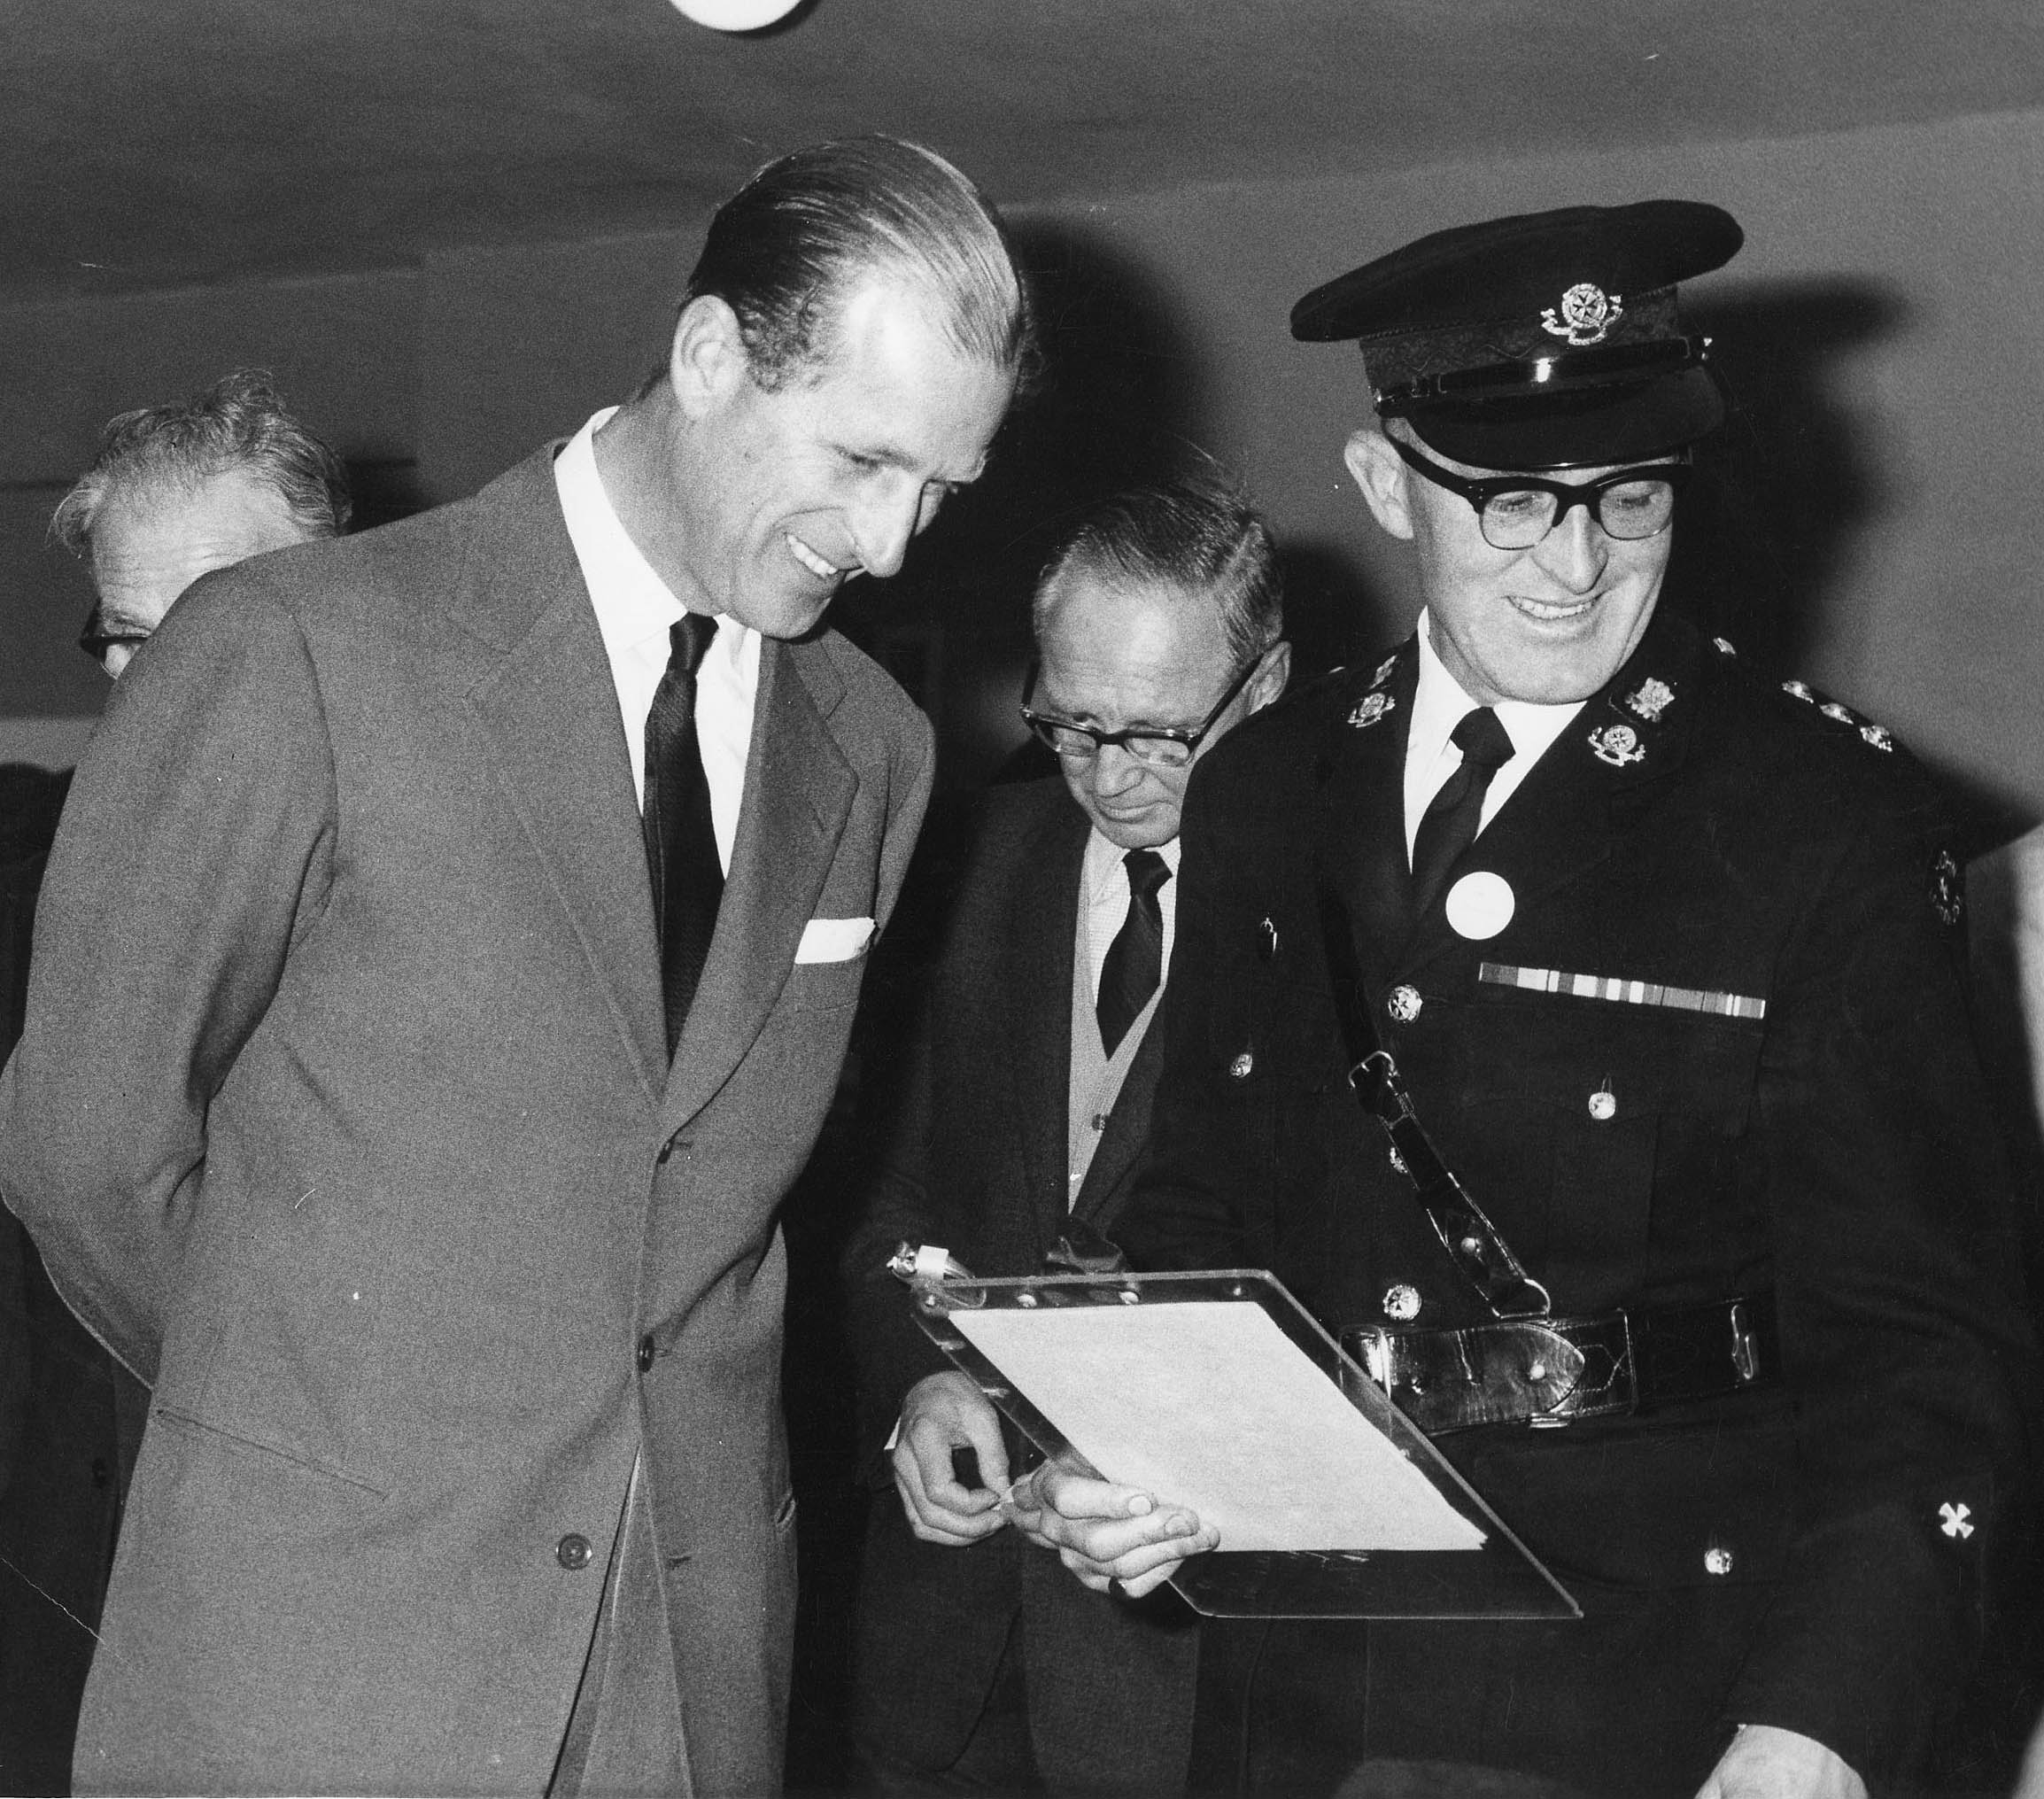 prince phillip at vauxhall #1